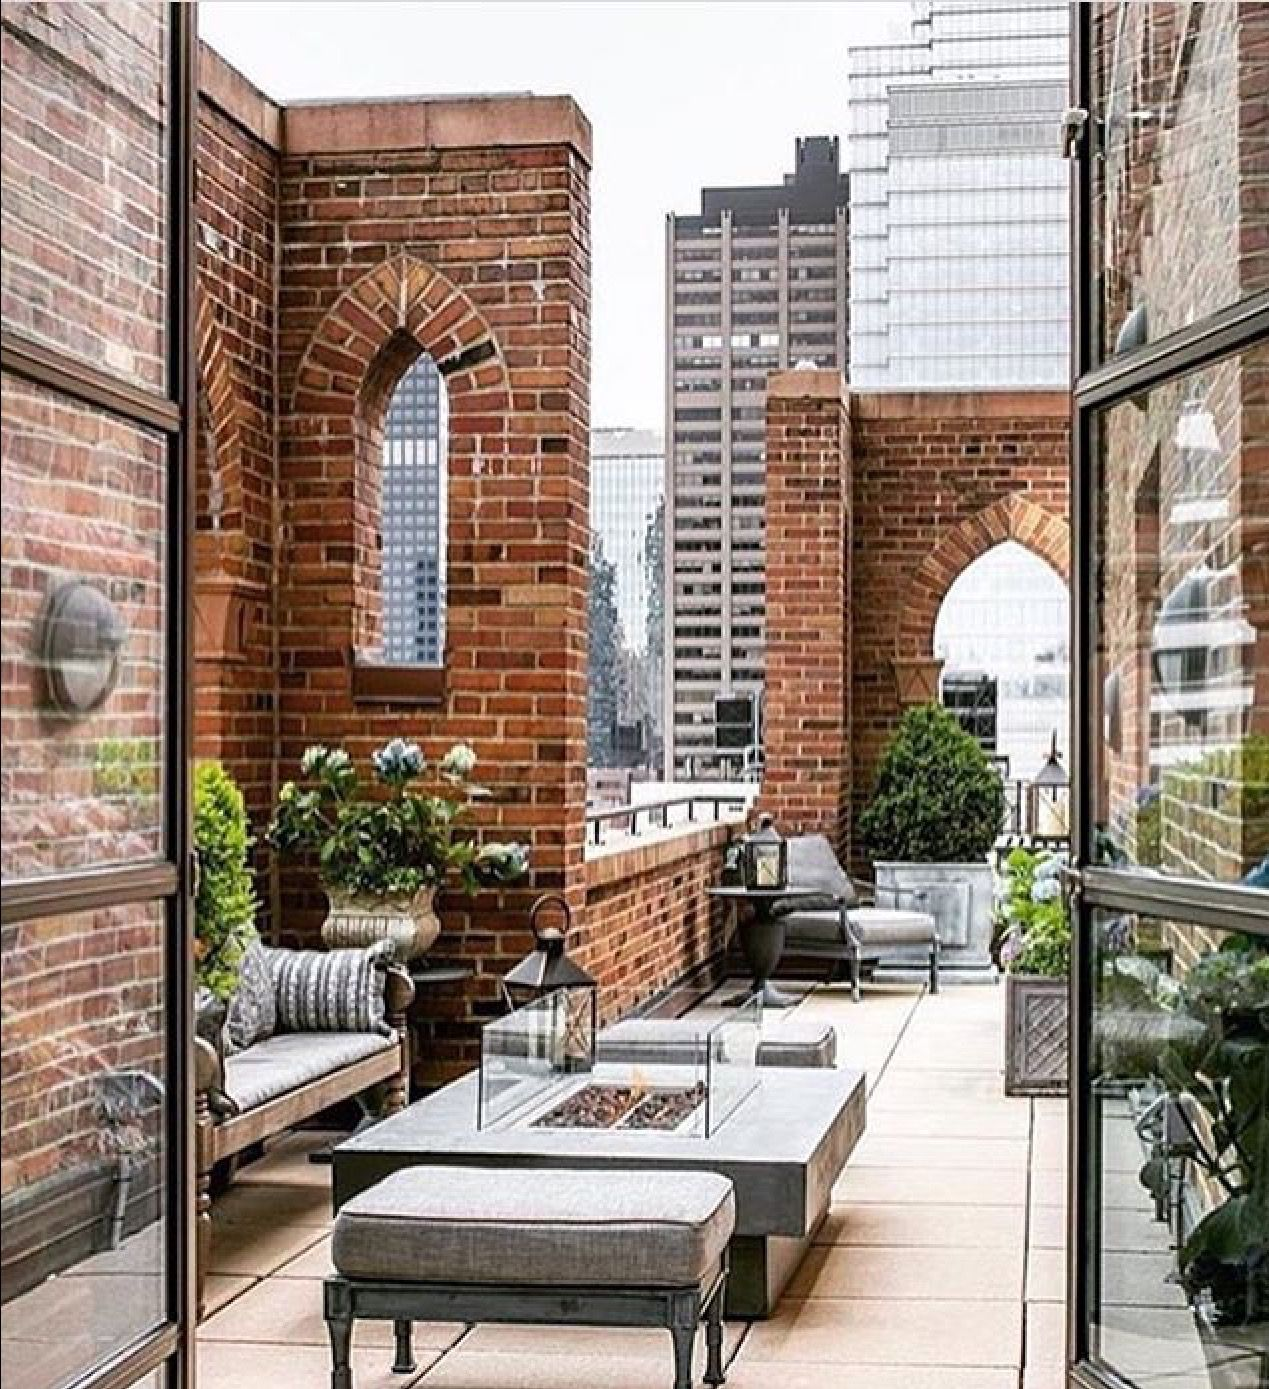 Terrace Garden Apartments: Roof Terrace New York Apartment